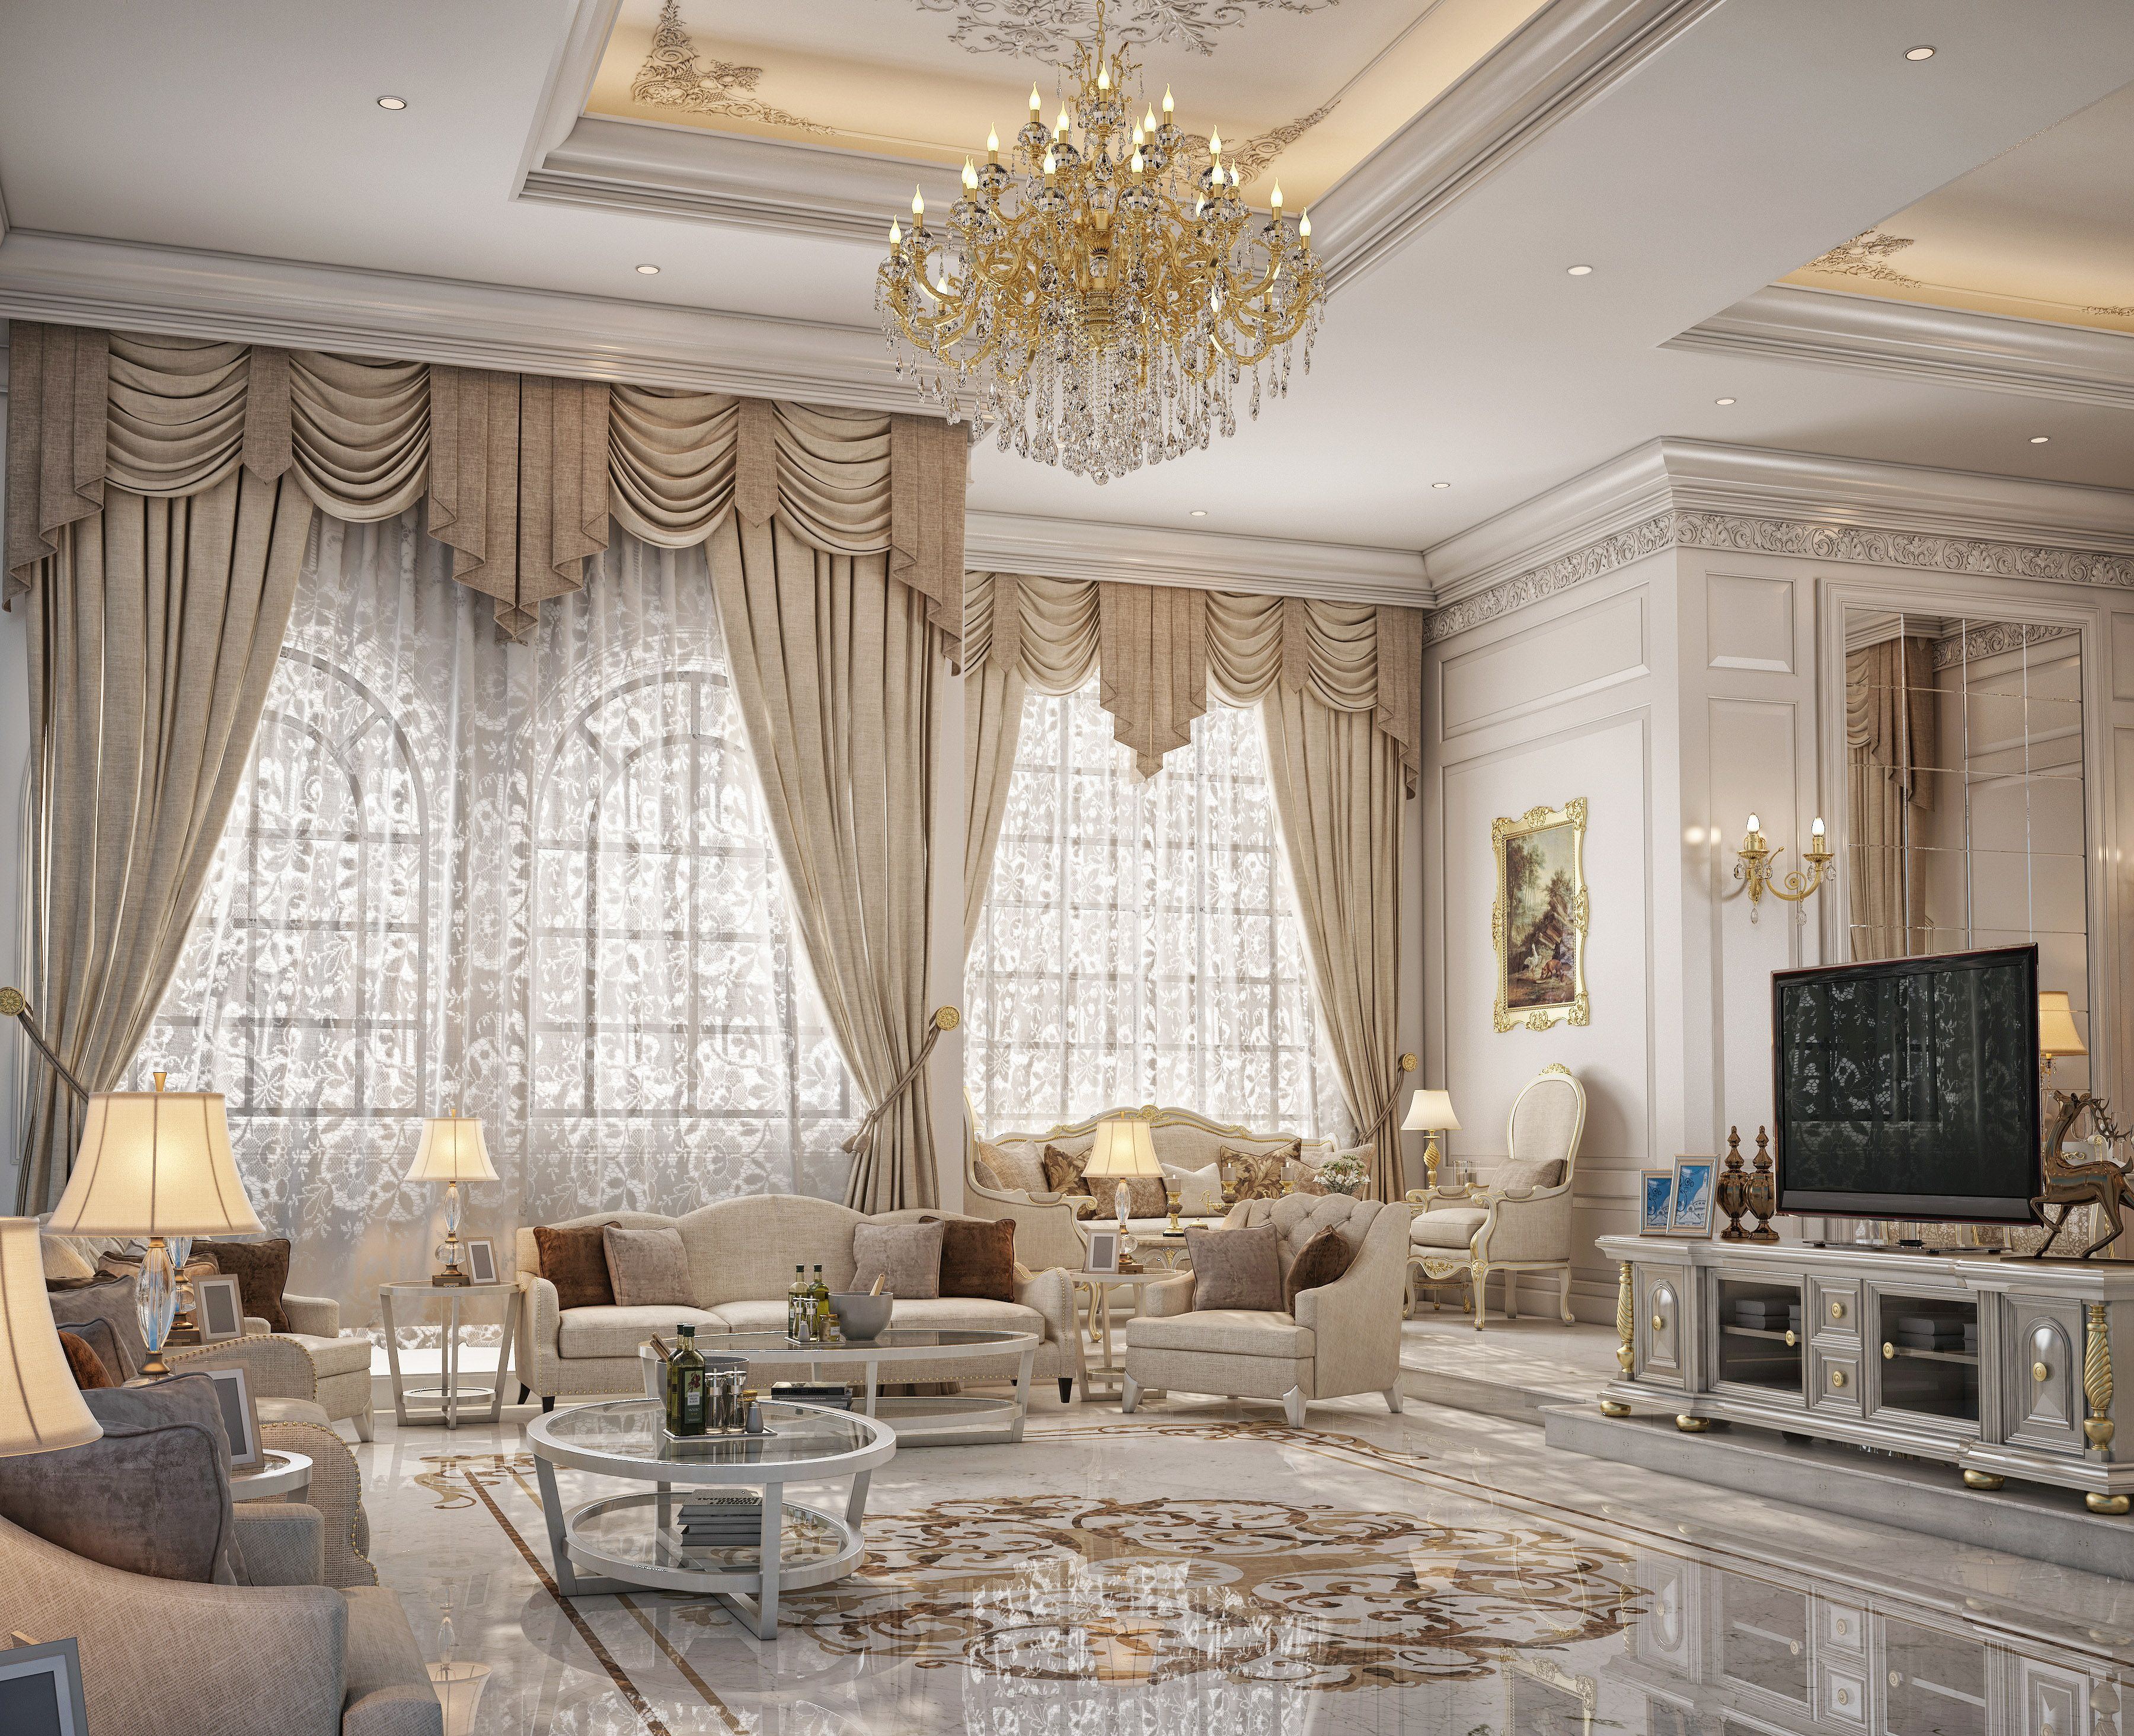 Dining U0026 Living Room Design For A Private Palace At Doha, Qatar